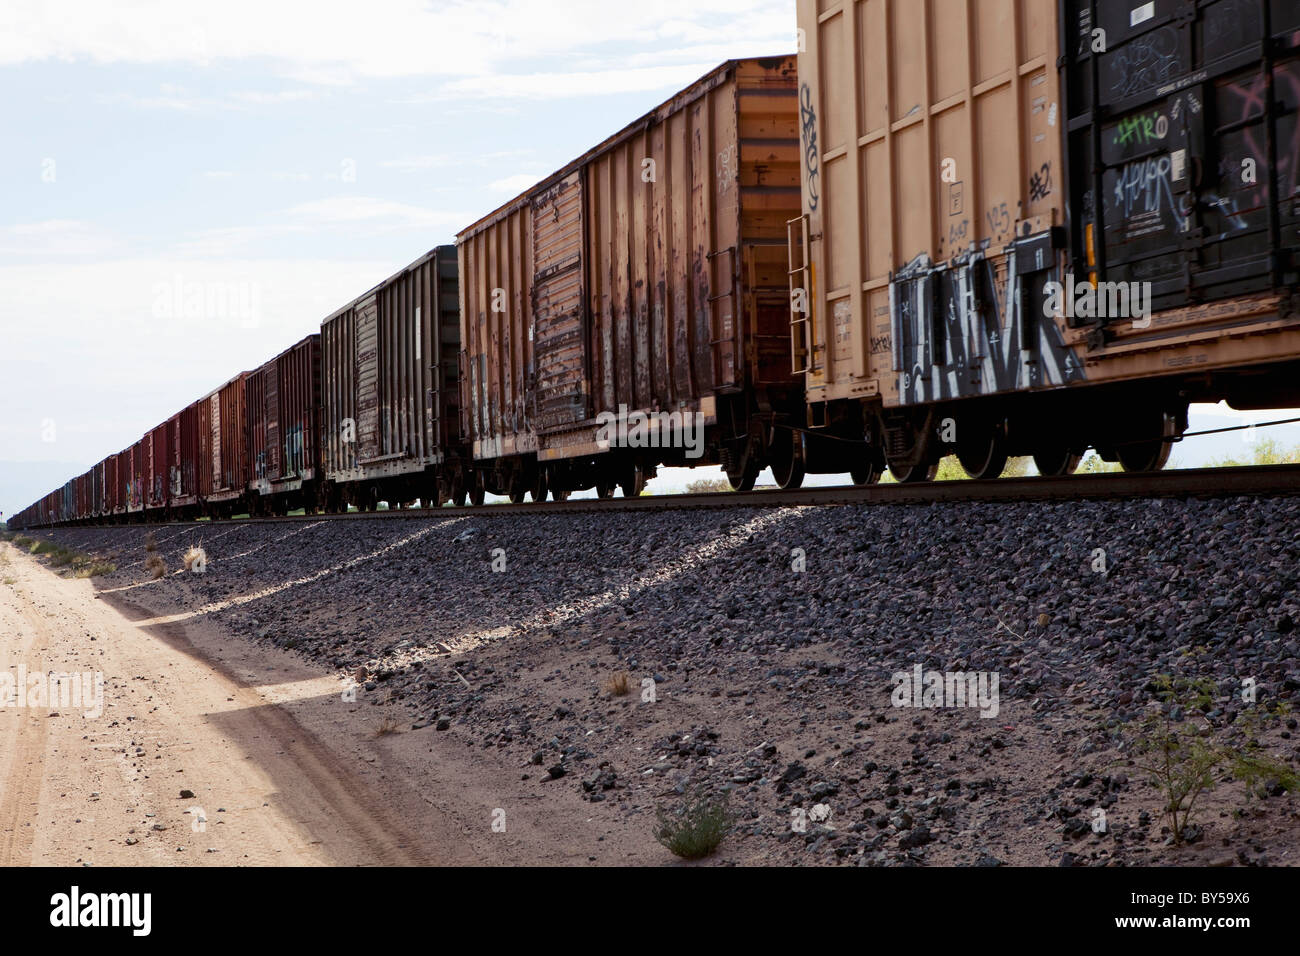 Freight train - Stock Image